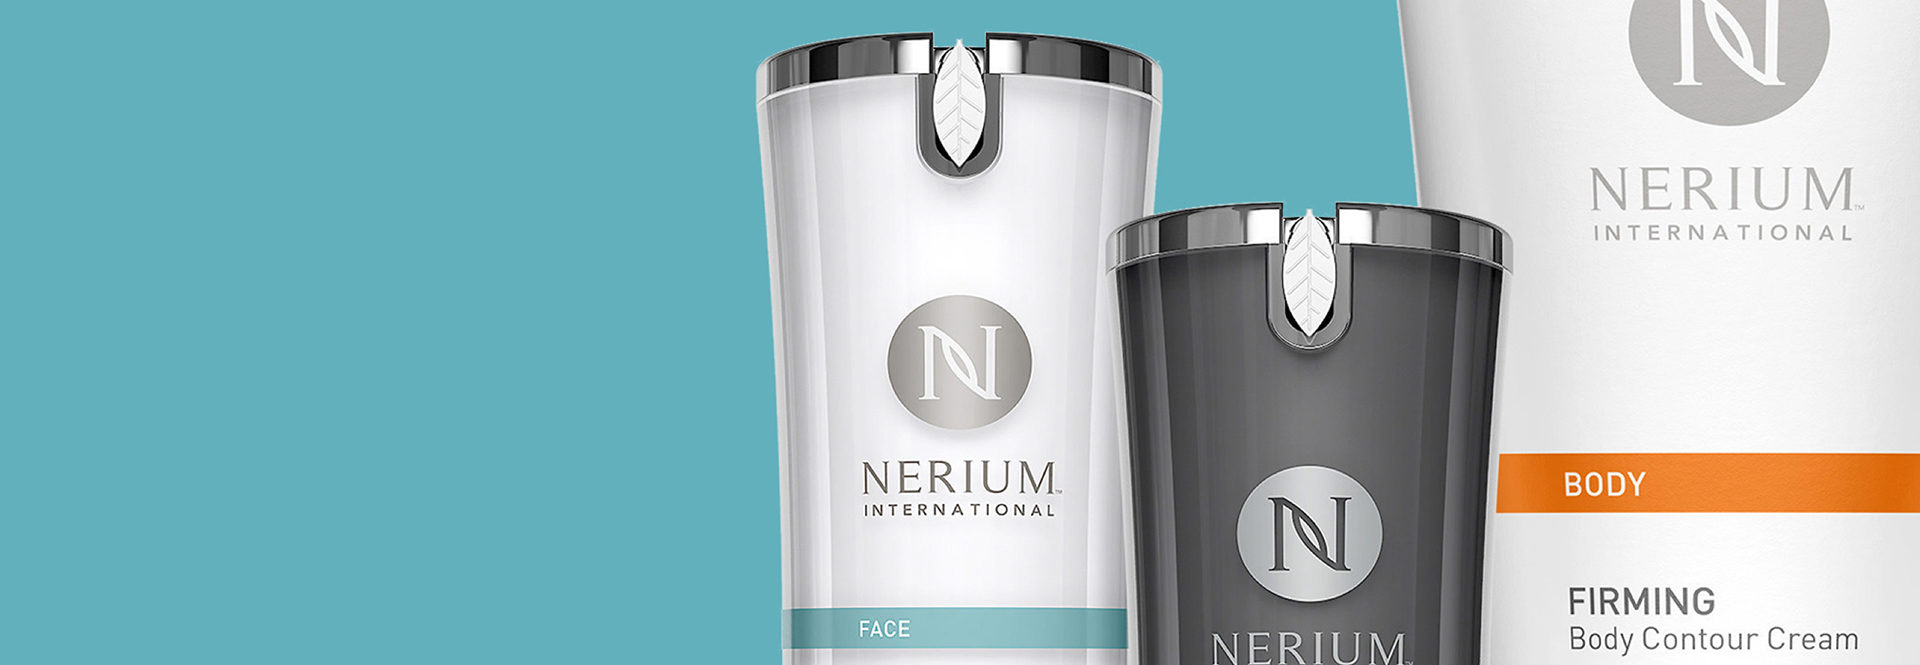 Range of Nerium products